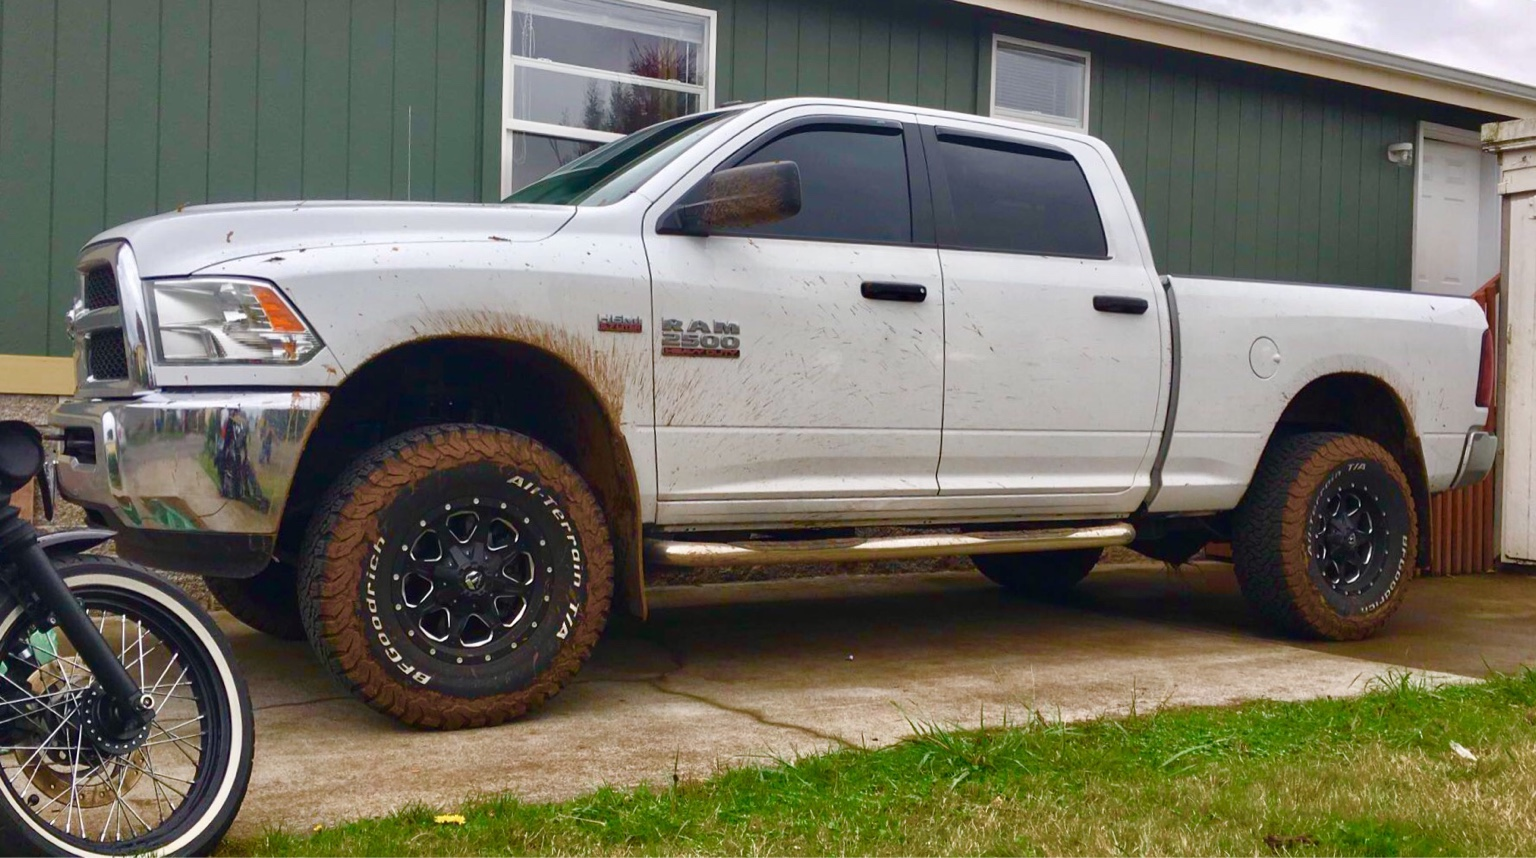 St Maxx Vs Ko2 >> Cooper Discoverer Atp Dodge Ram Pictures to Pin on Pinterest - ThePinsta